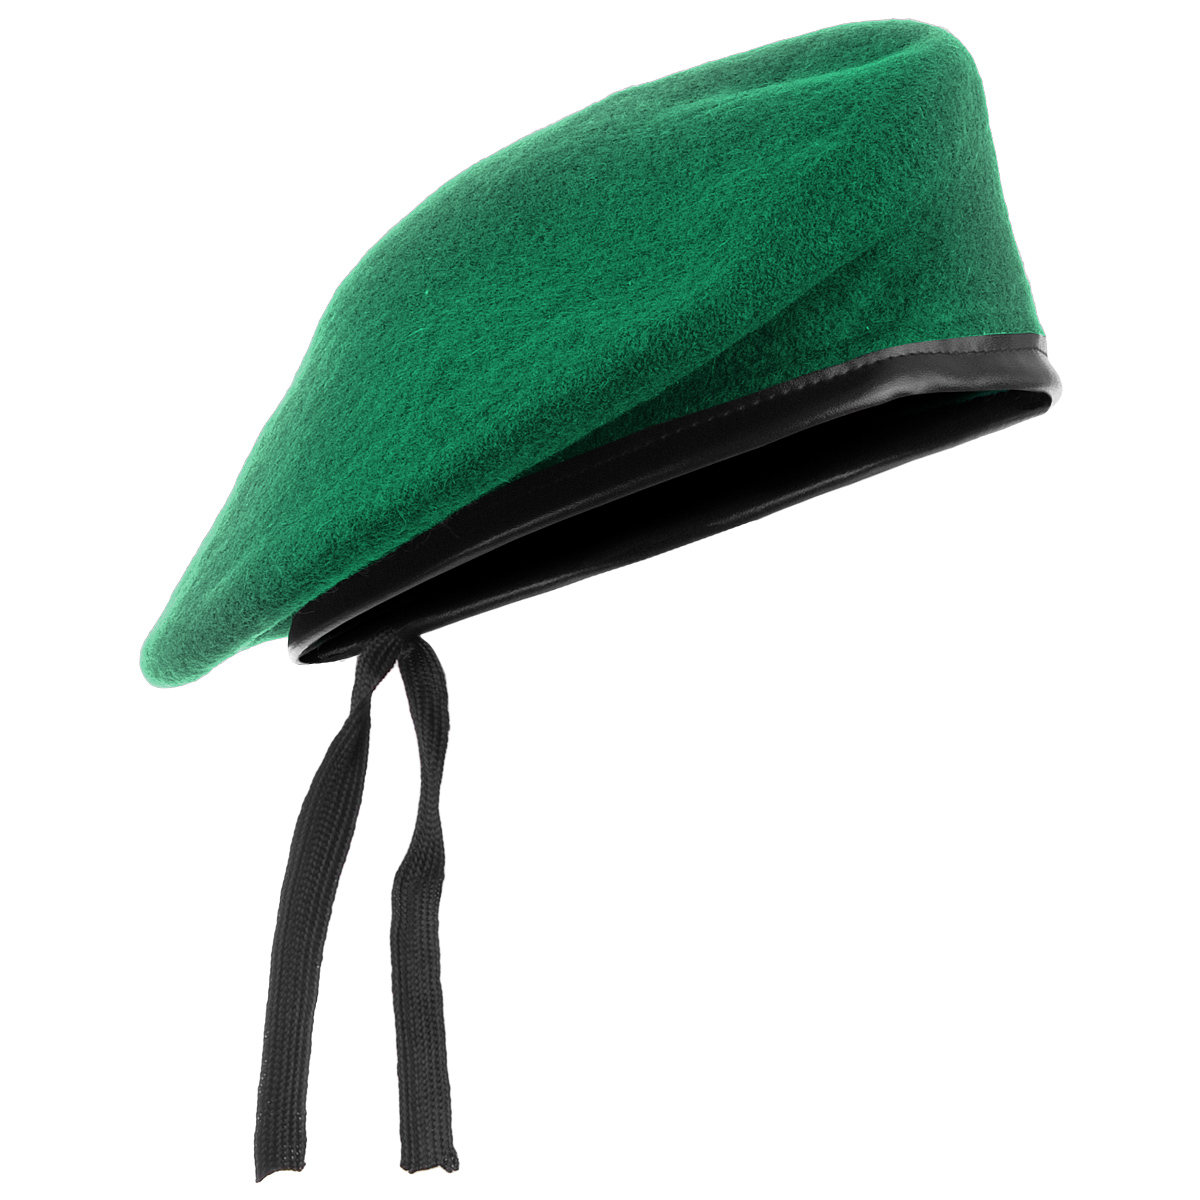 Details about Military Style Tactical Classic Army Beret Mens Hat Uniform  Cap Wool Green Olive a53a6ad03ac